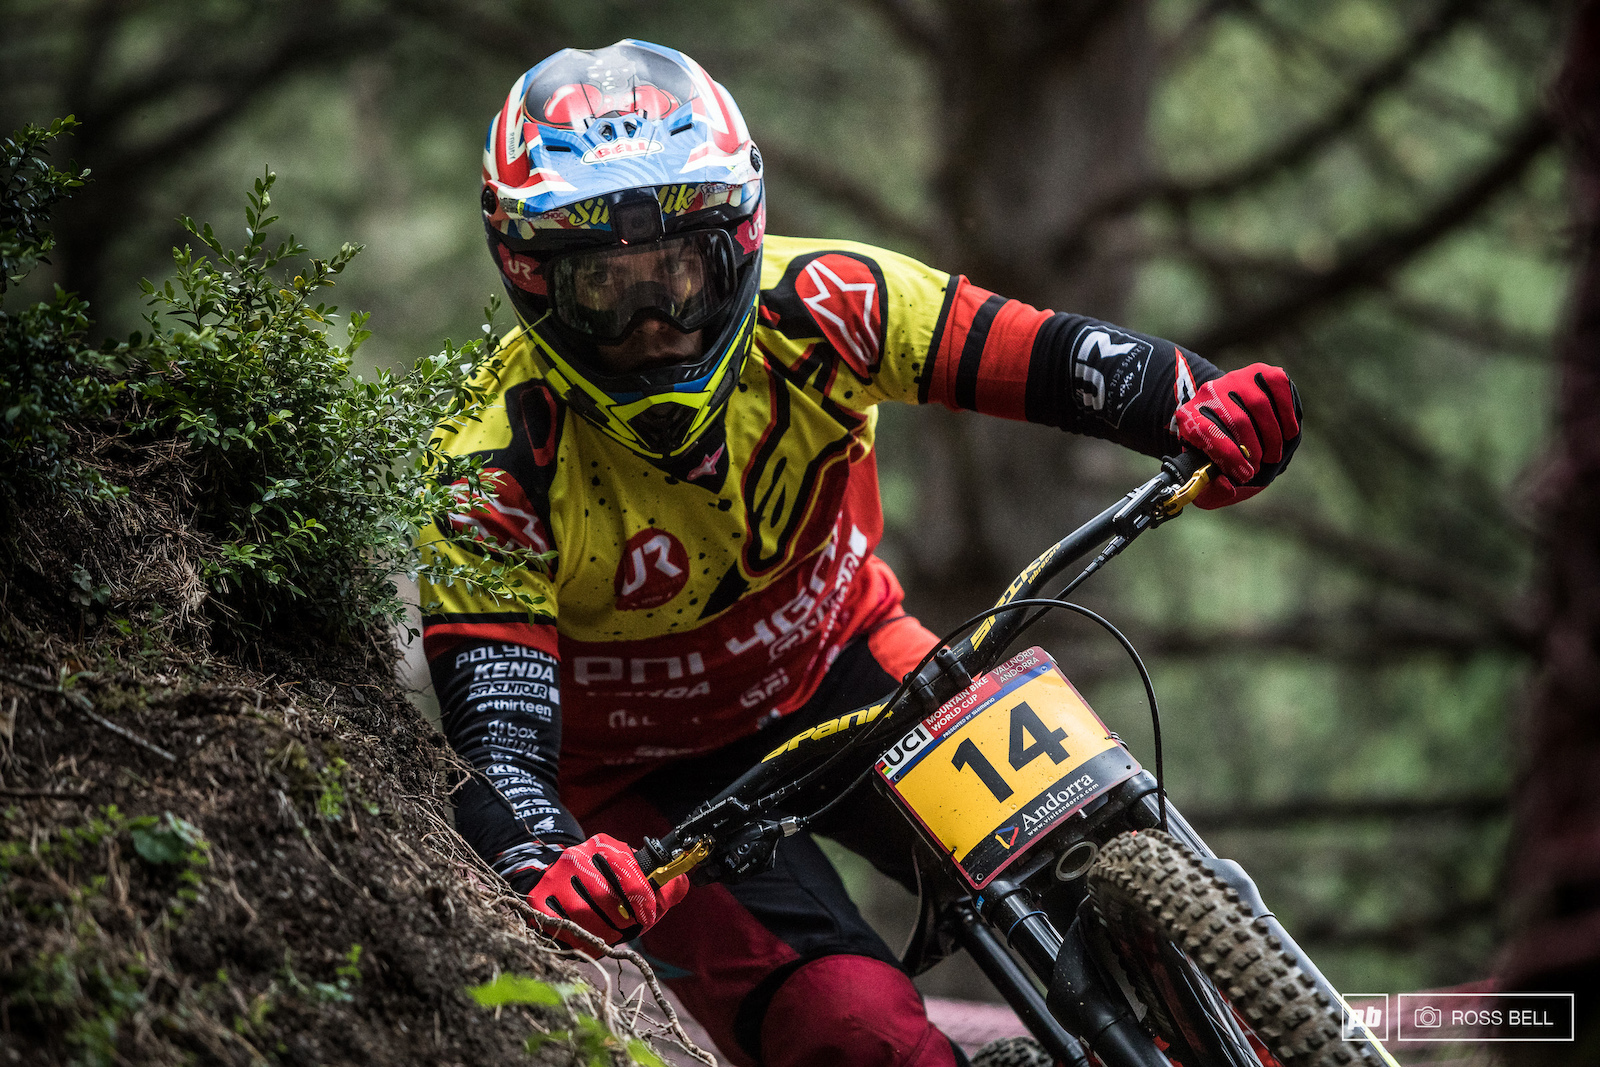 With such small margins separating the riders you ve got to be sure to shave as close as you dare to any imposing trail side feature. Sik Mik matching his number board with a 14th place finish.